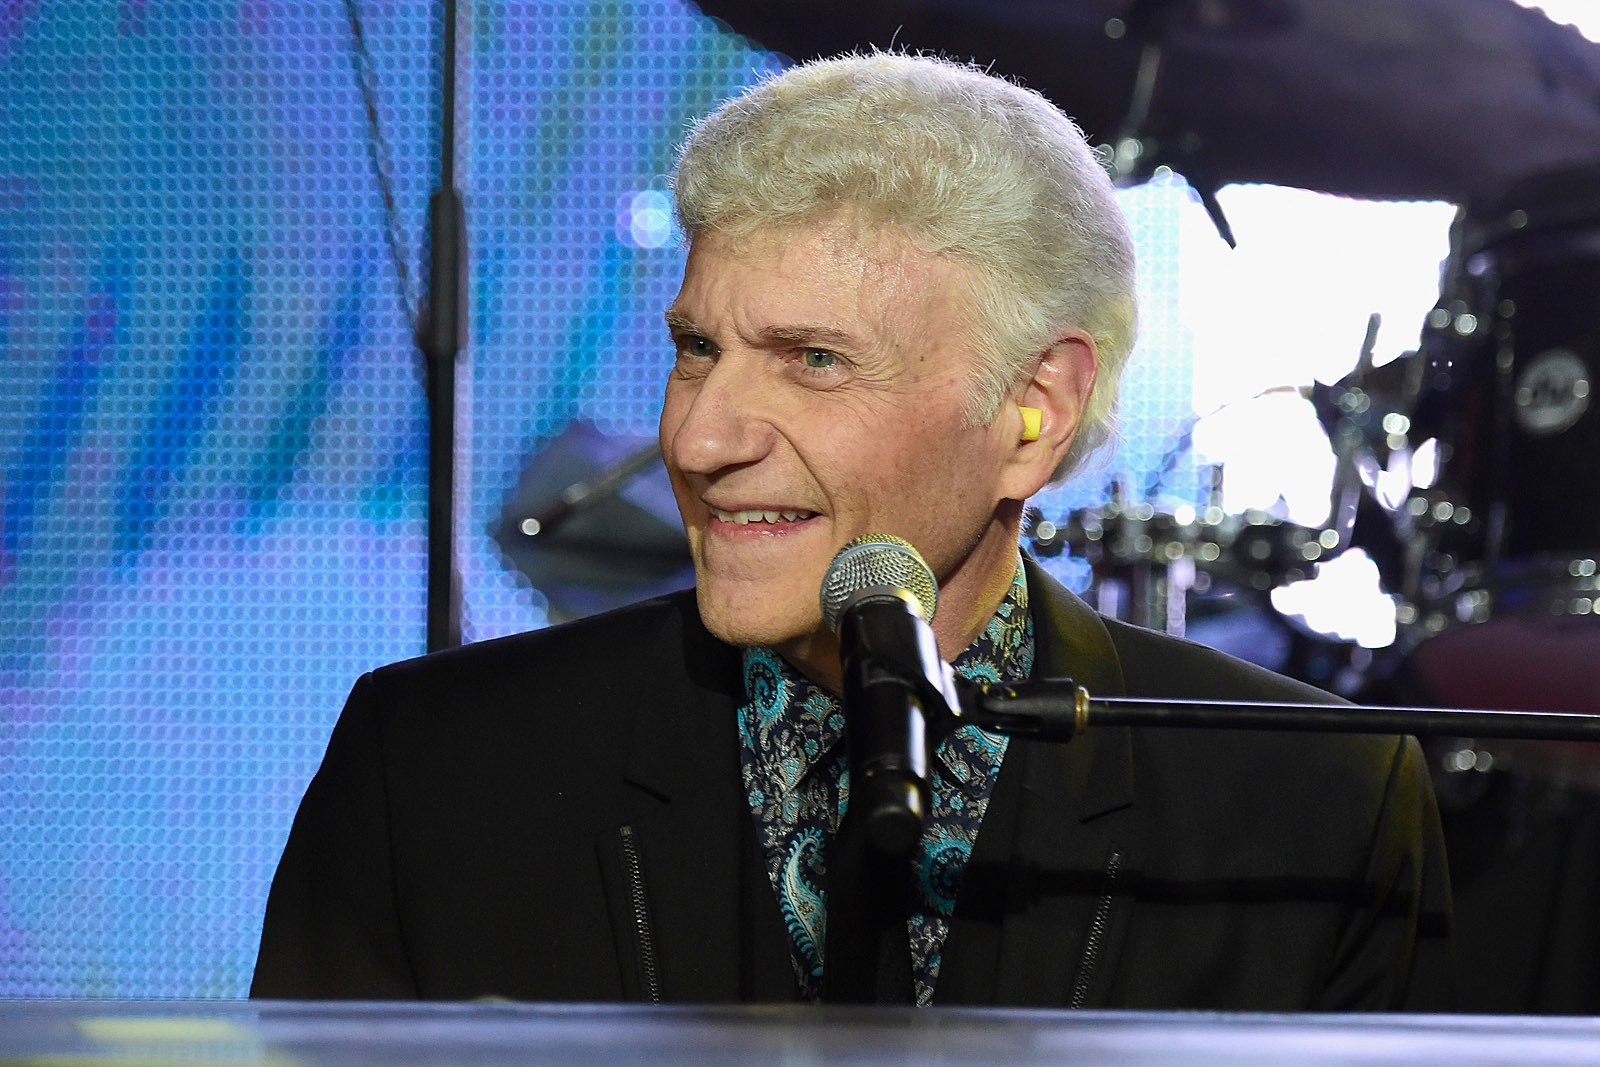 Dennis DeYoung Says the Promoters Are Forcing Styx to Play 'Mr. Roboto'